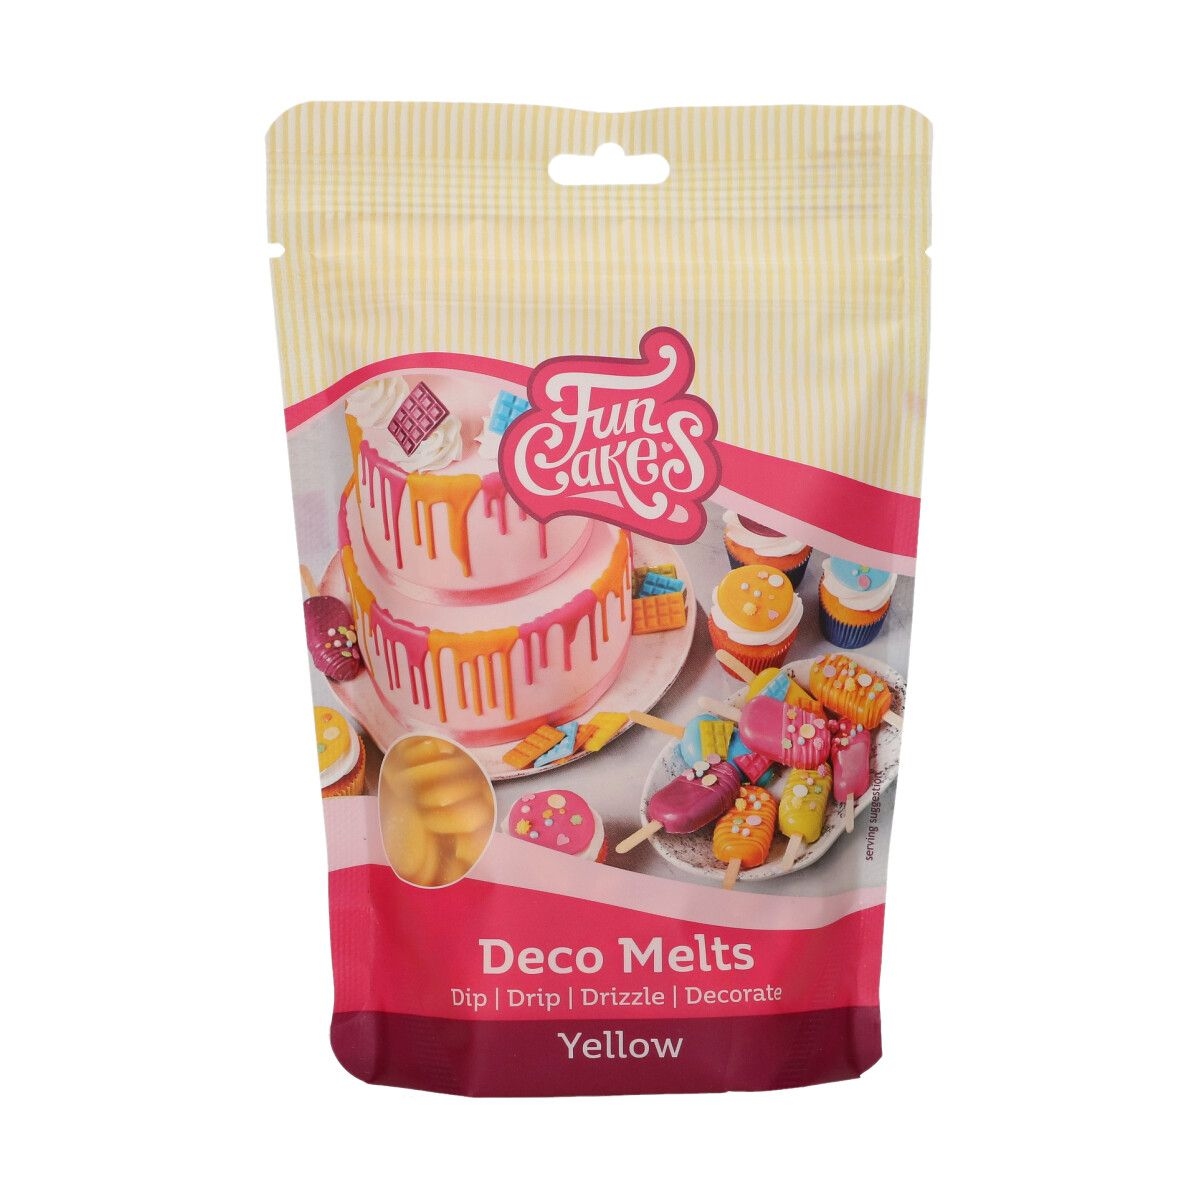 FunCakes Deco Melts -Yellow- 250g